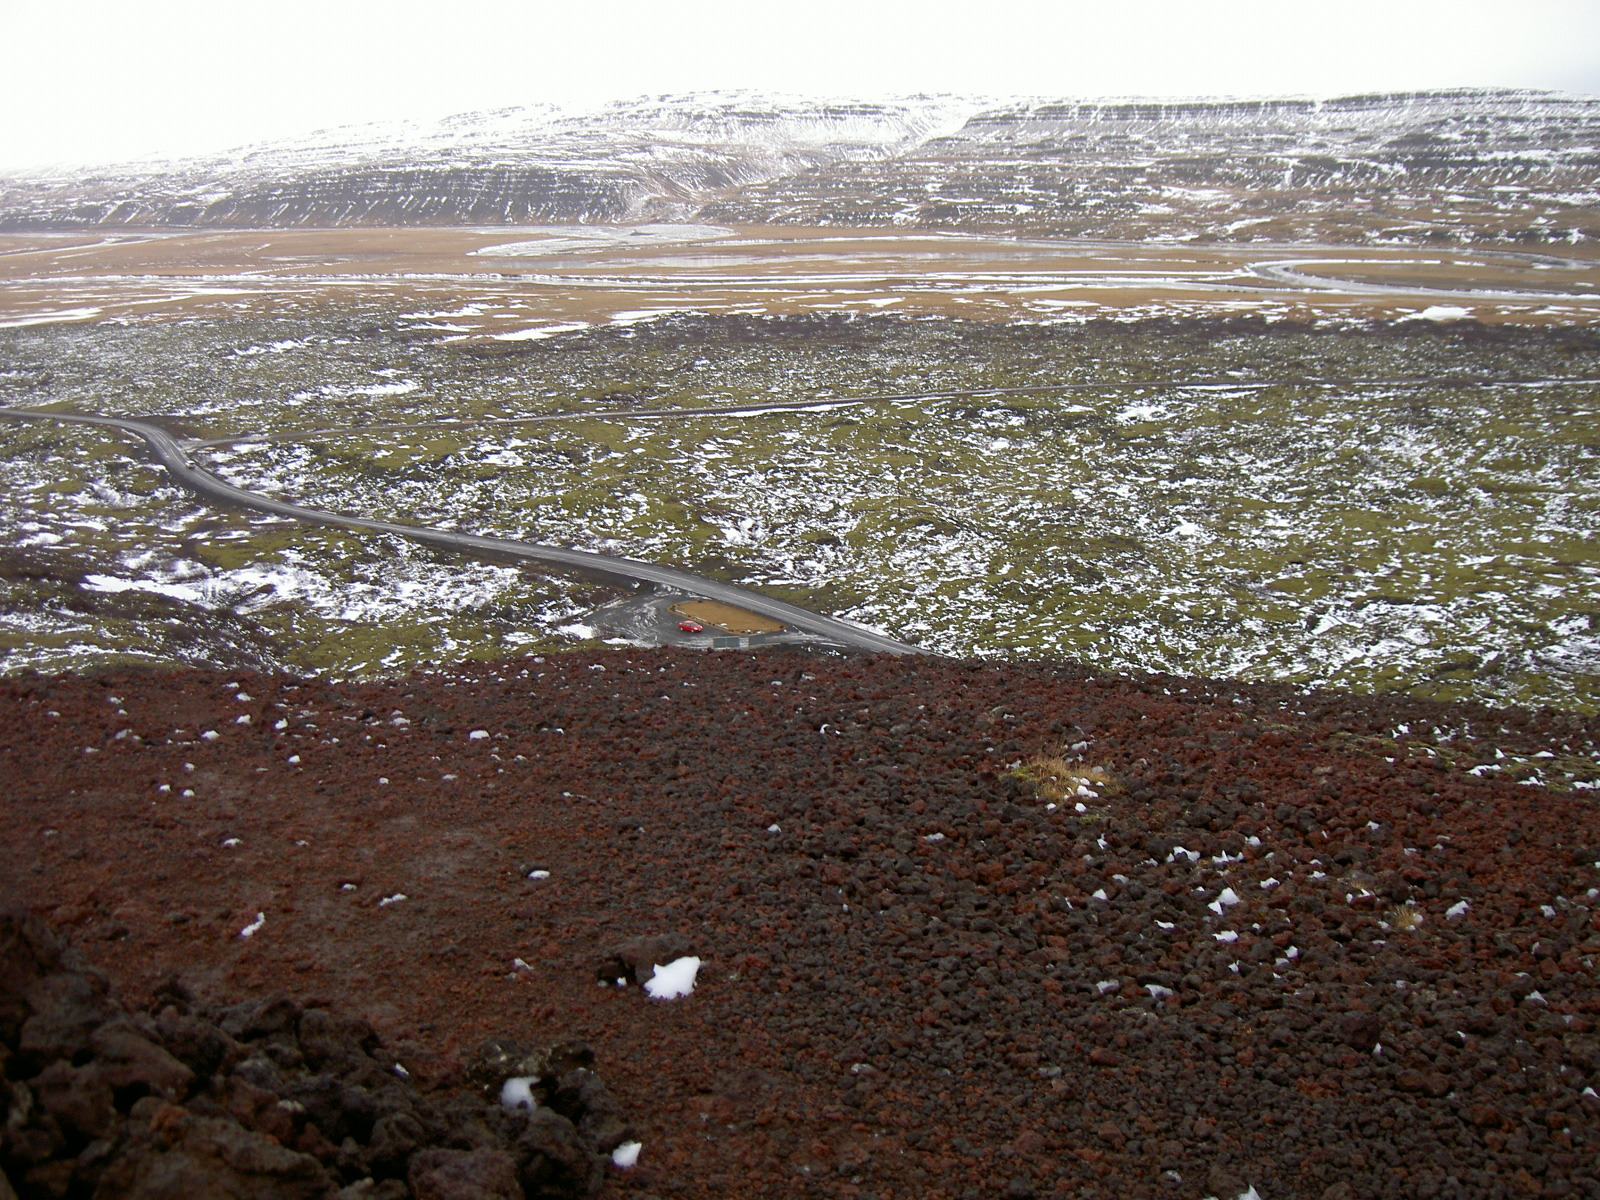 View from Grabrok crater (purpose of page is to display an image)